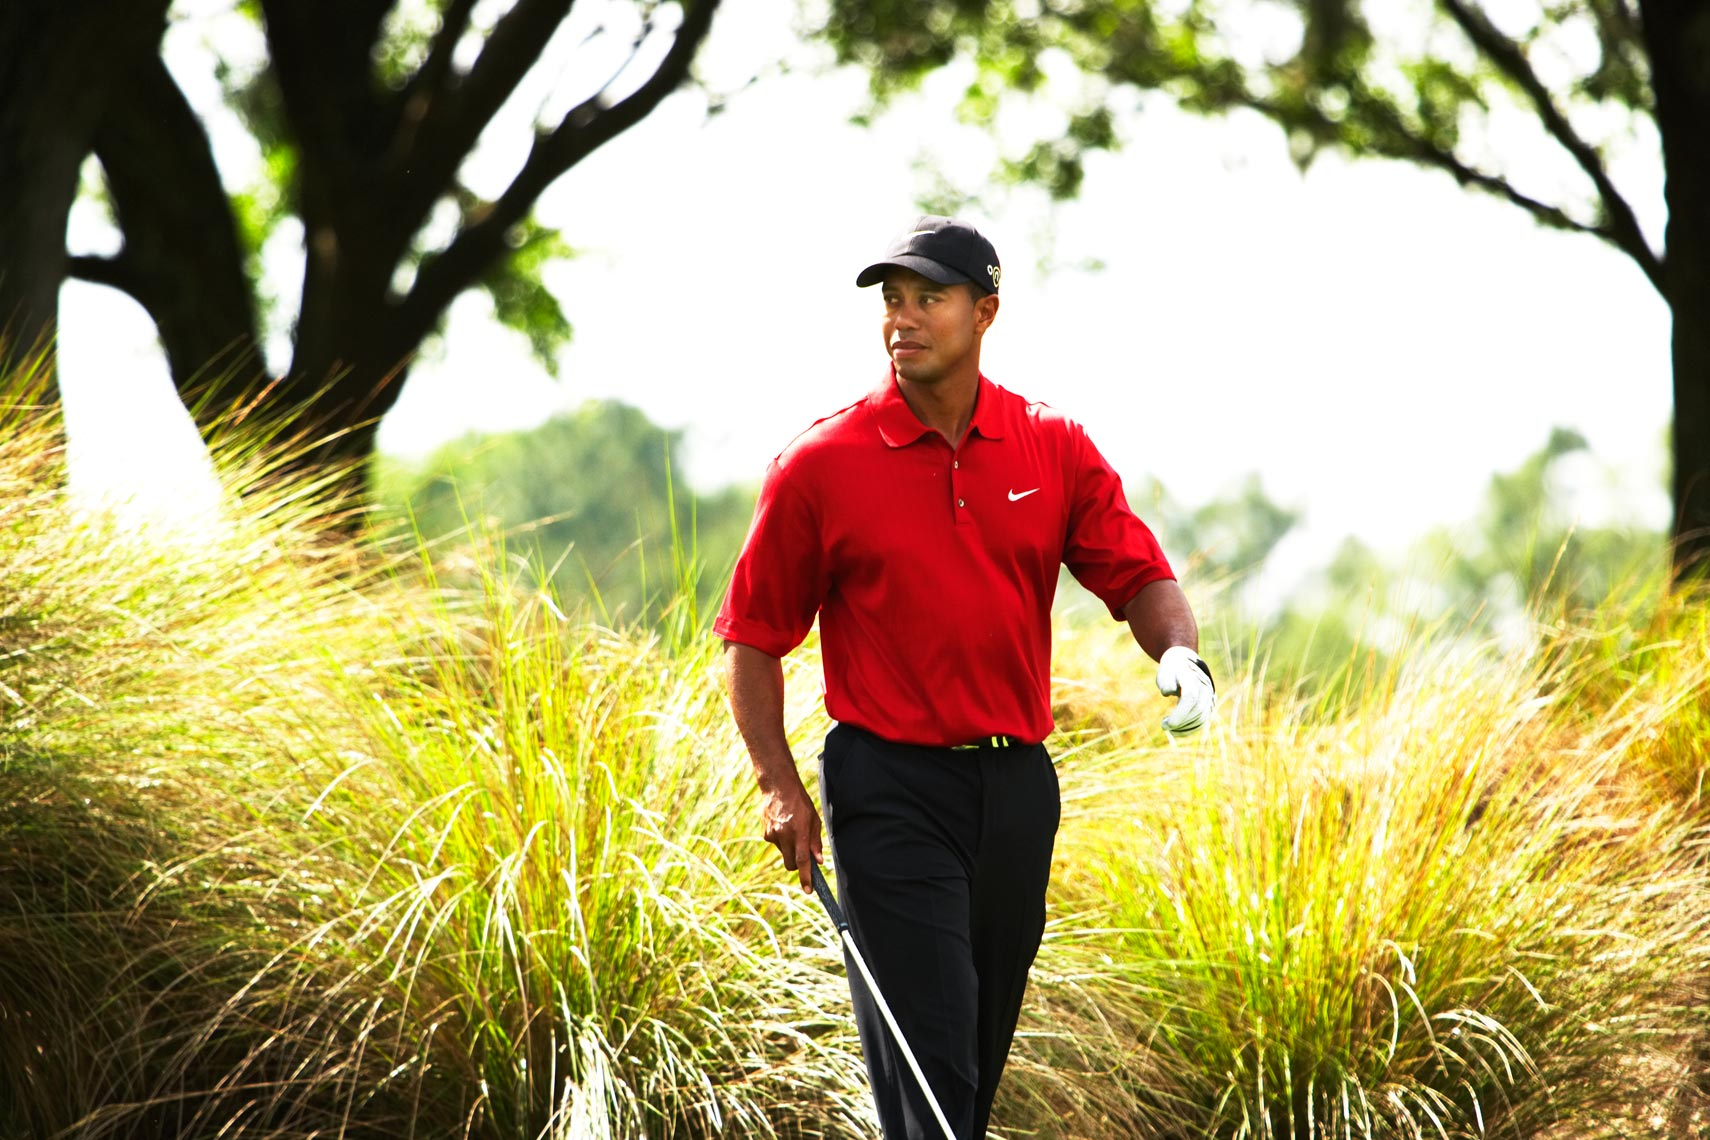 Tiger-Walking-Reeds_work.jpg